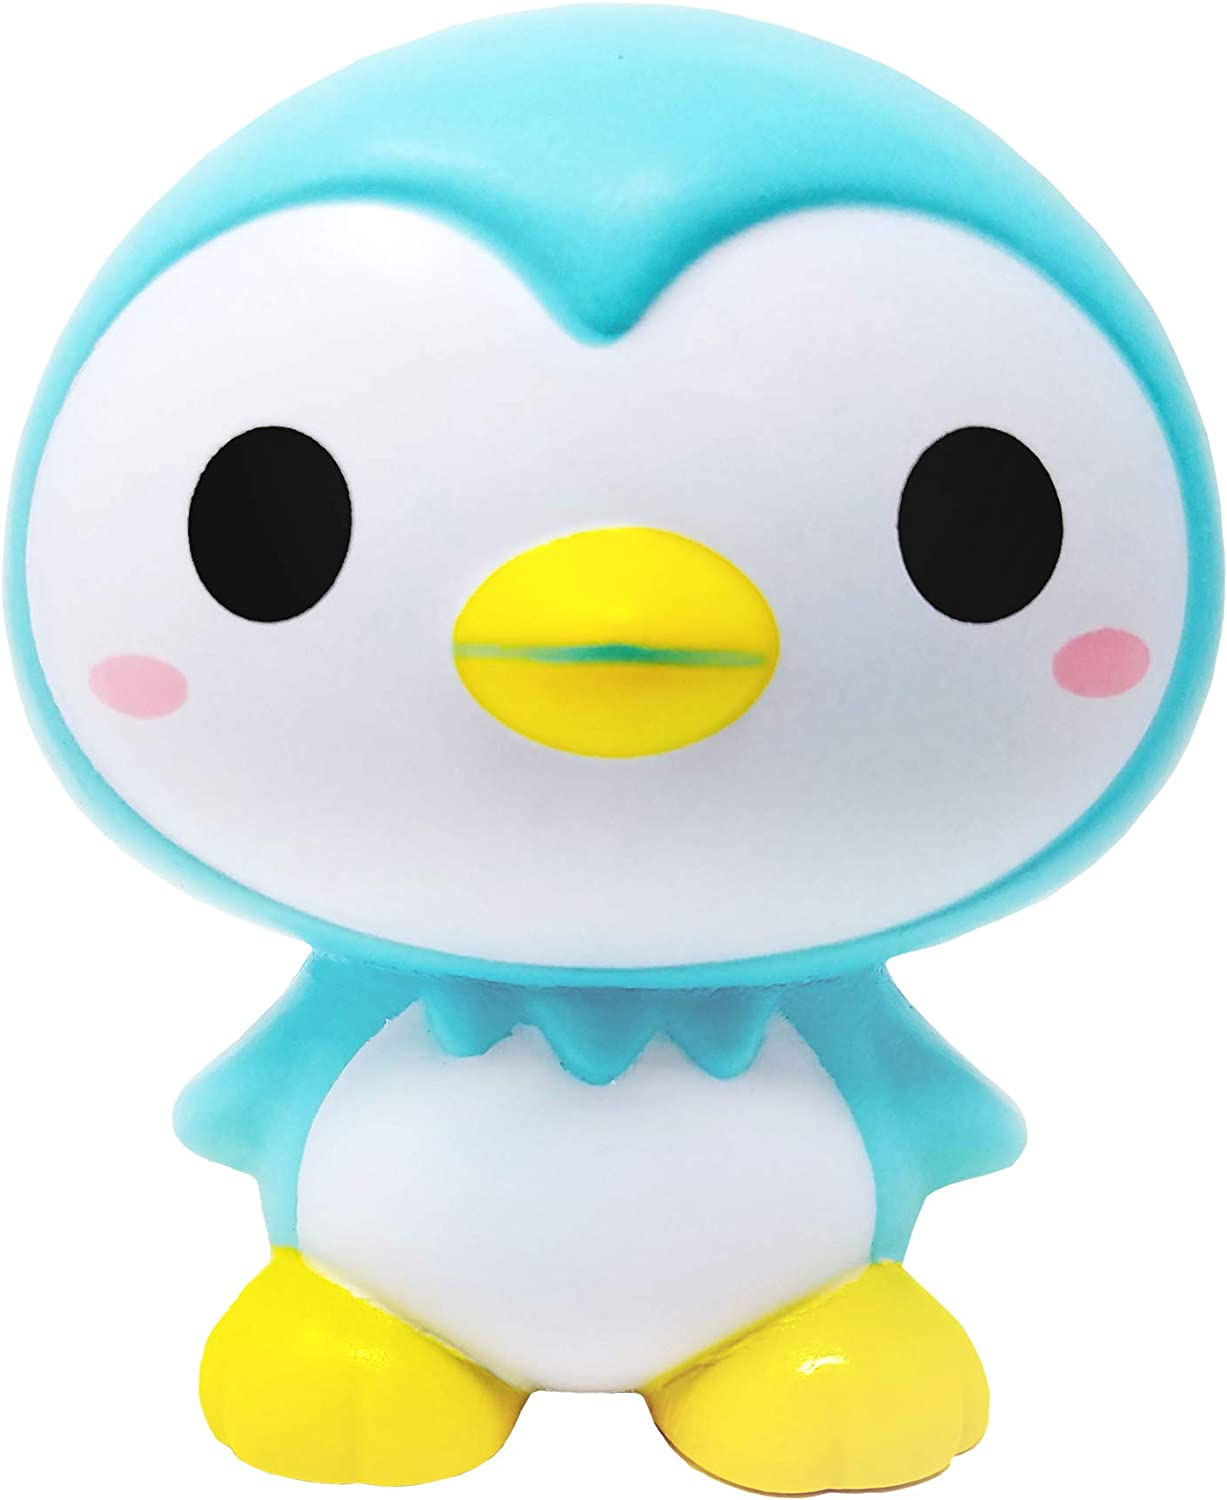 ibloom Little Penguins Cute Slow Rising Squishy Toy (SORA, Light Blue, Apple Scented) for Birthday Gifts, Party Favors, Stress Balls, Play at Home & Relieve Stress with Kawaii Squishies for Kids